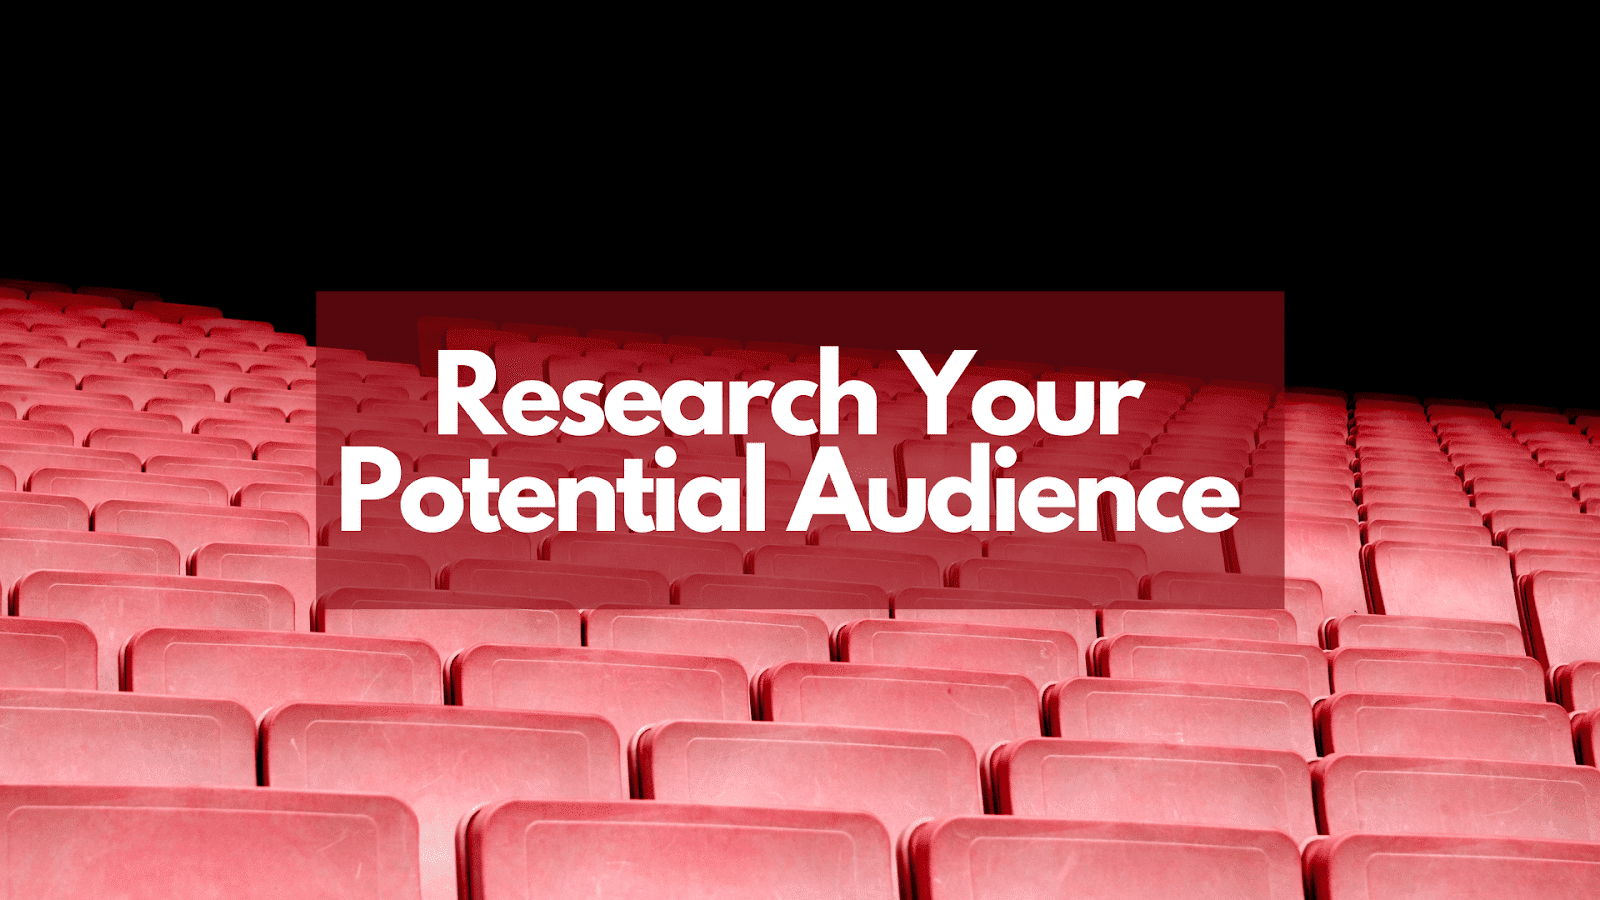 Research Your Potential Audience